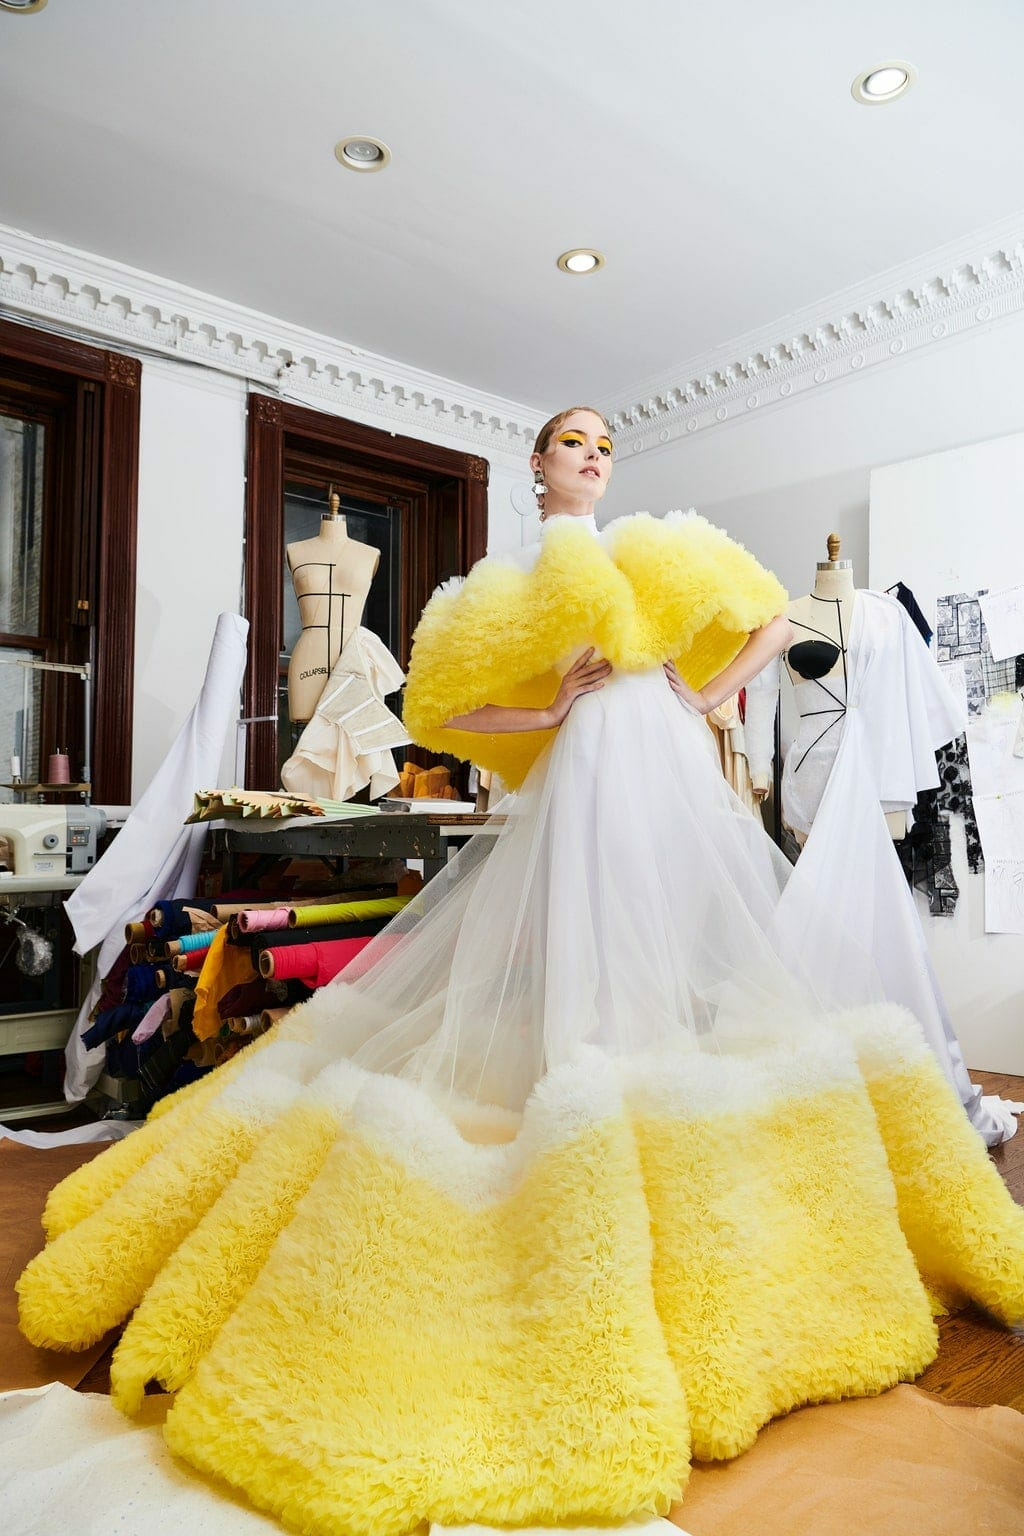 Christian Siriano Pre-Fall 2021 New York. RUNWAY MAGAZINE ® Collections. RUNWAY NOW / RUNWAY NEW